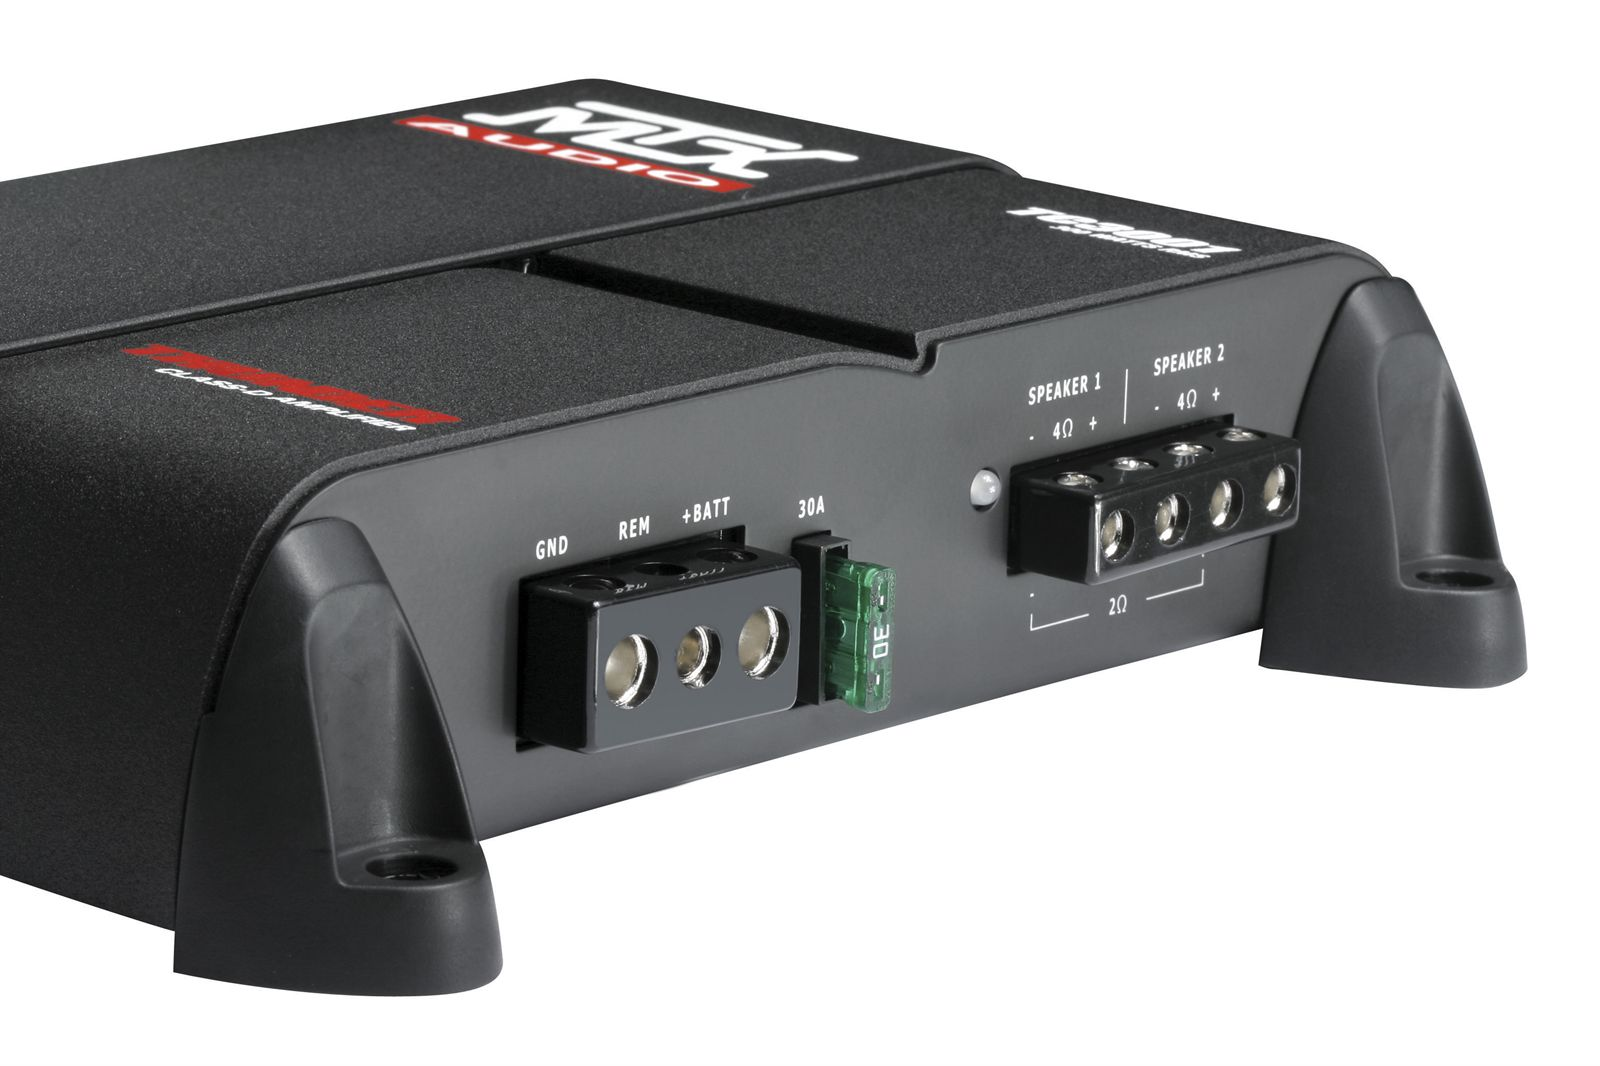 https://www.mtx.com/c/thumbs/0013219_tc3001-mtx-300-watt-rms-mono-car-amplifier.jpeg